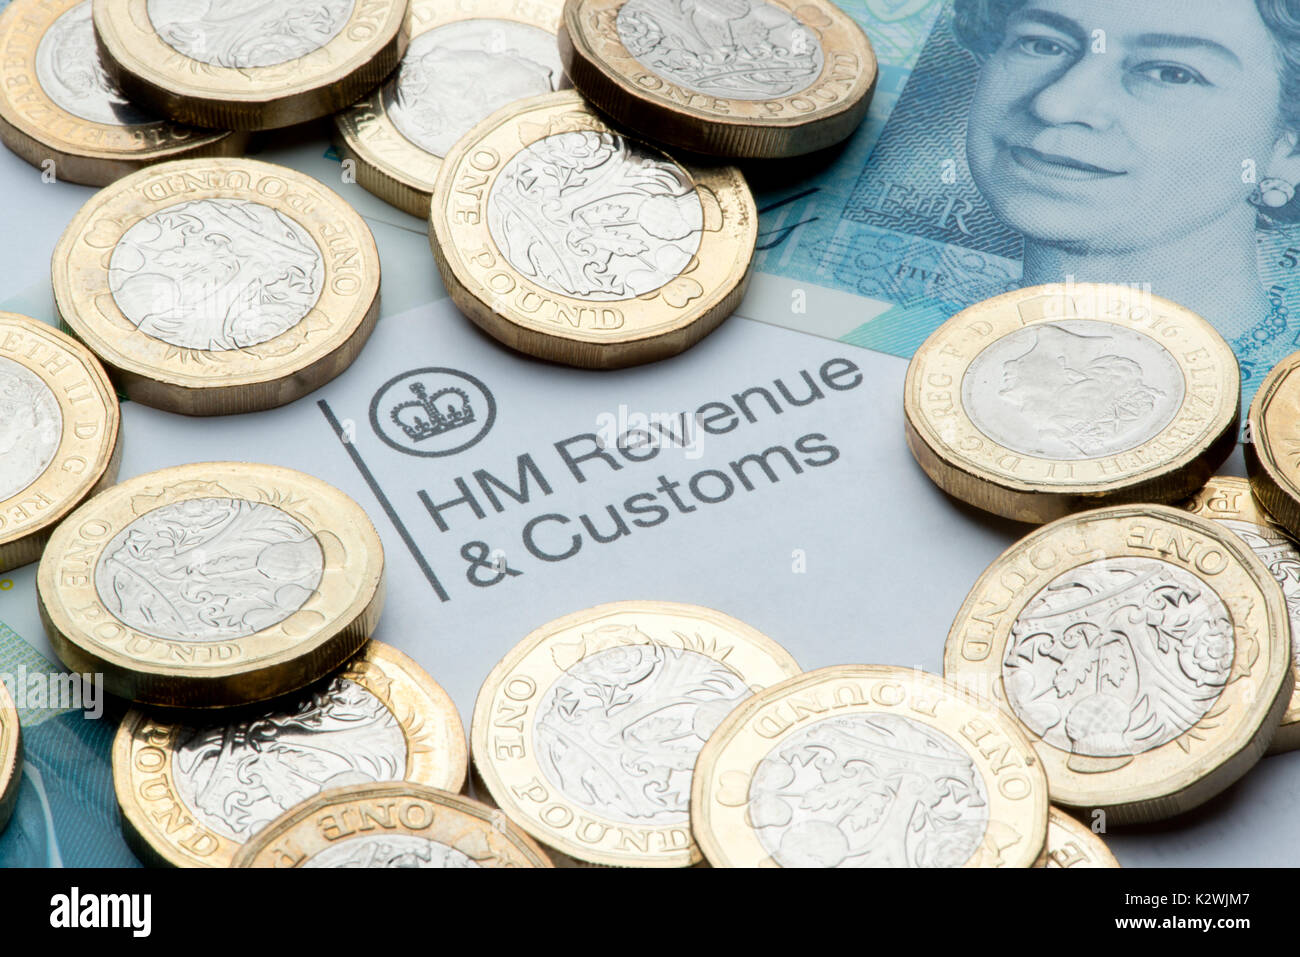 An HM Revenues & Customs letterhead surrounded by new £1 coins and a £5 note. Stock Photo